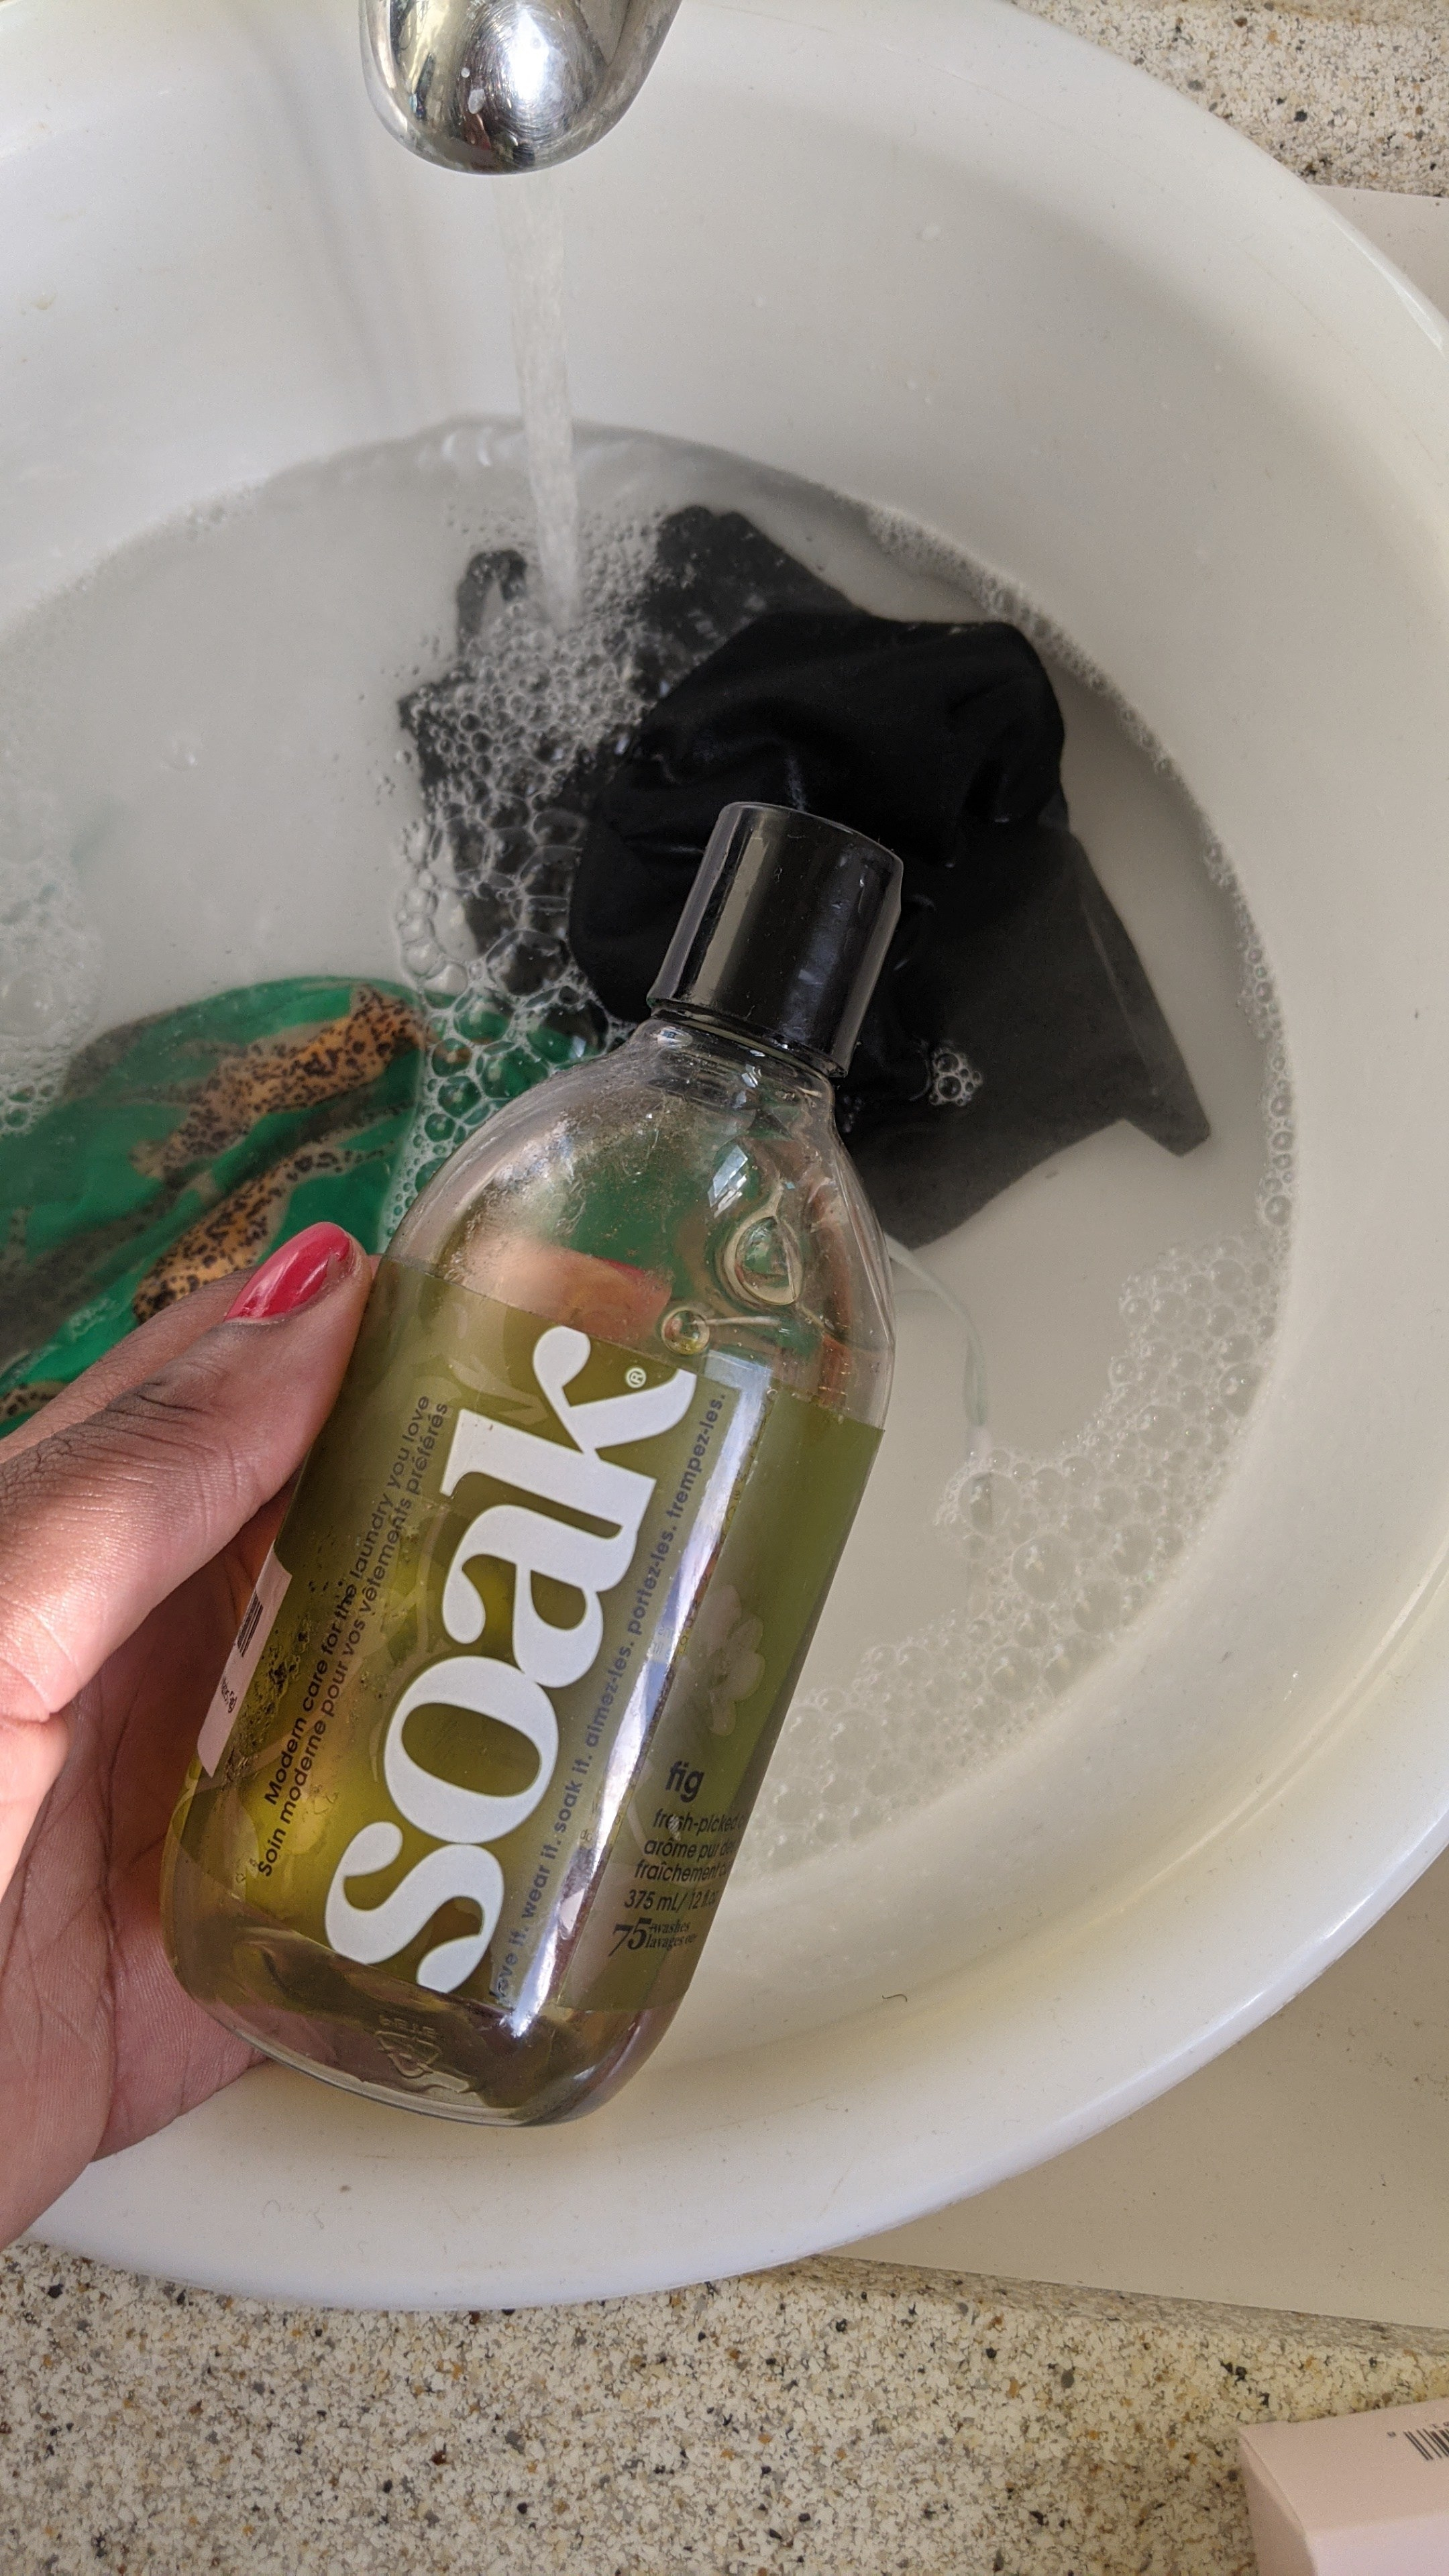 A person holding a small bottle of laundry detergent over a basin filled with water